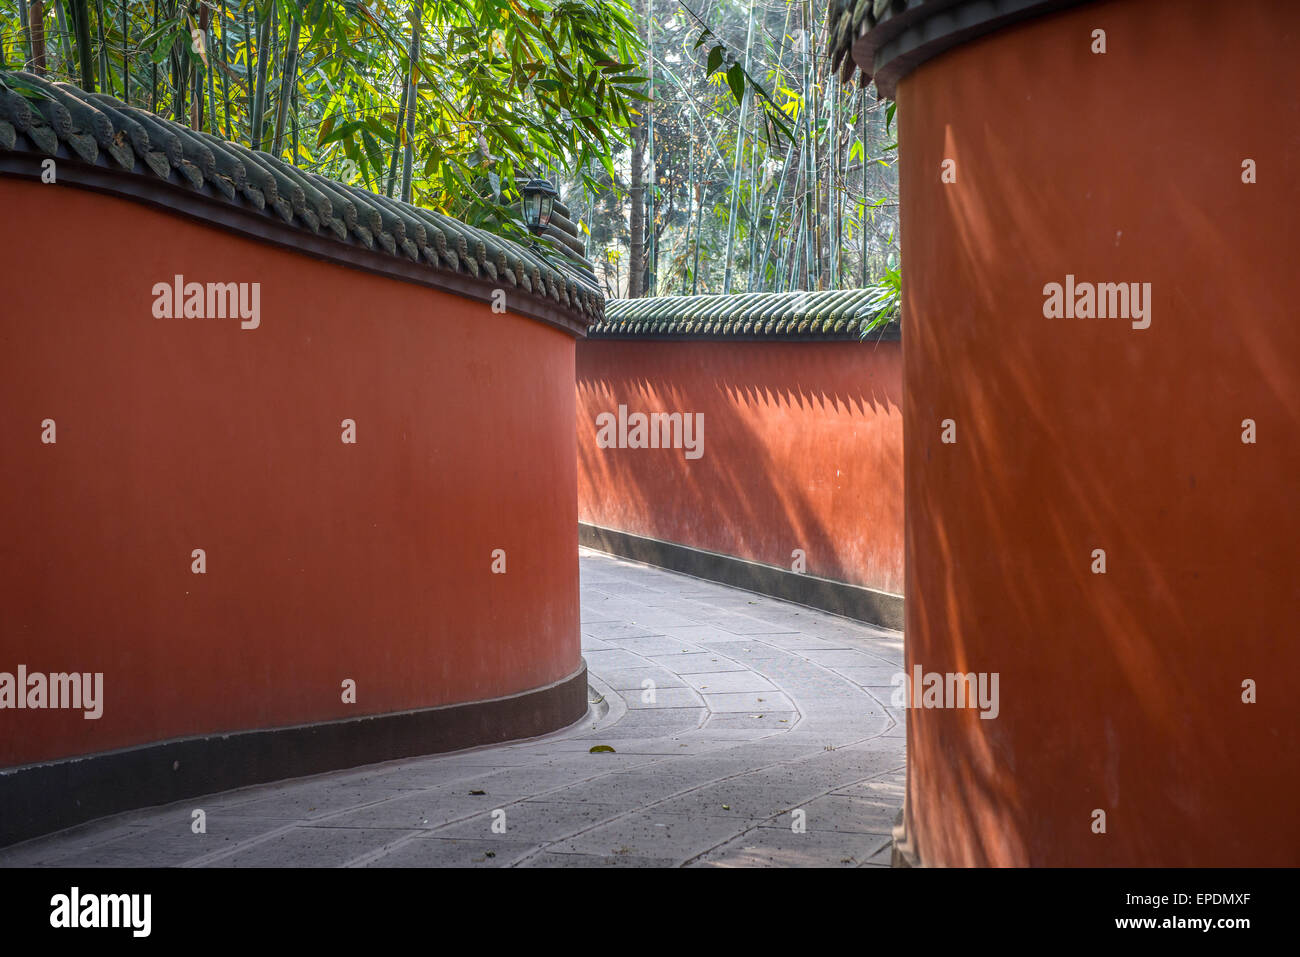 Wuhou Memorial Temple, Martial Marquis, Chengdu, Sichuan Province, China - Stock Image